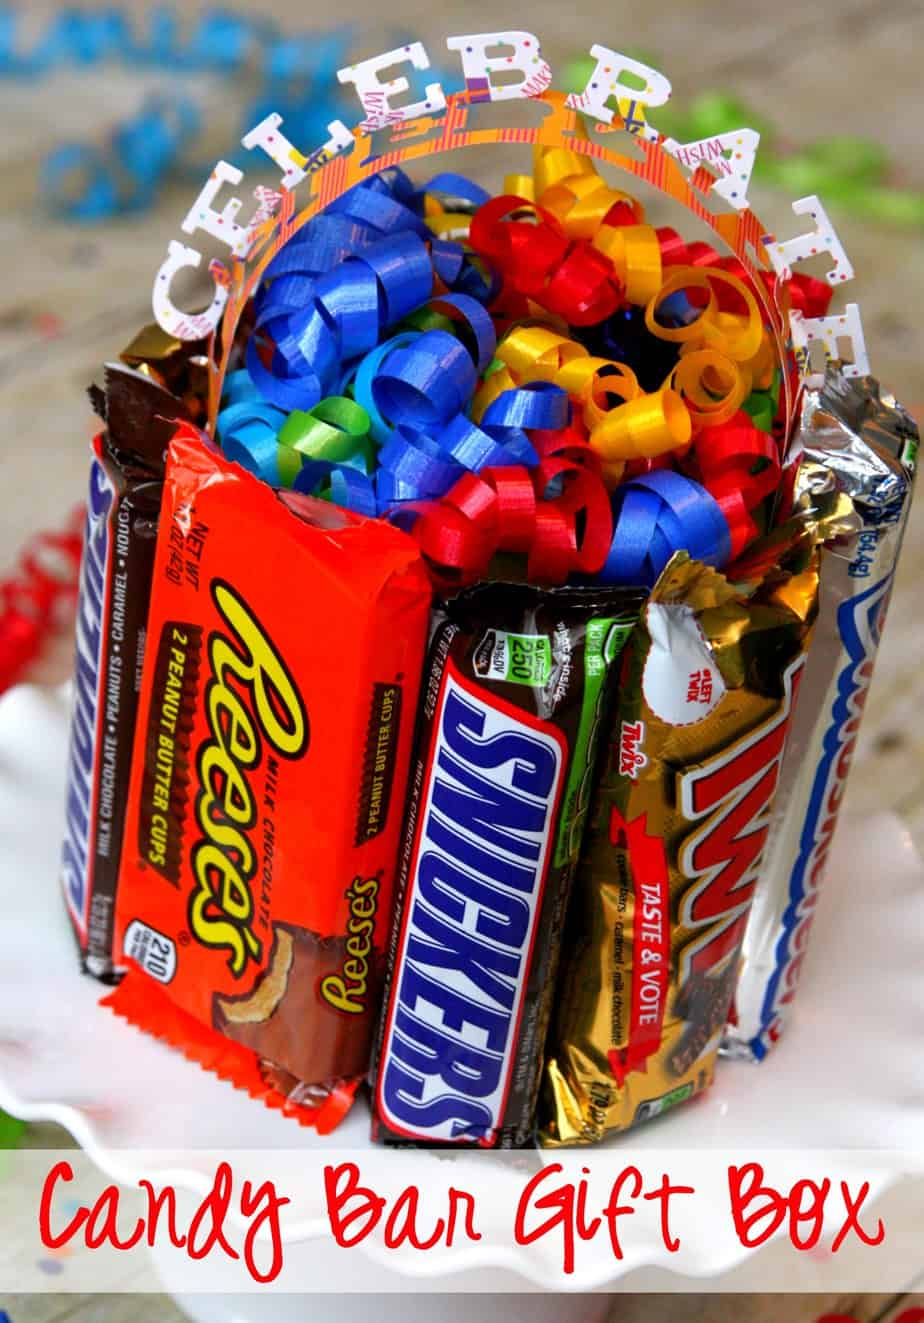 Chocolate Bar Gift Boxes : Easy candy bar gift box awesome idea happy go lucky